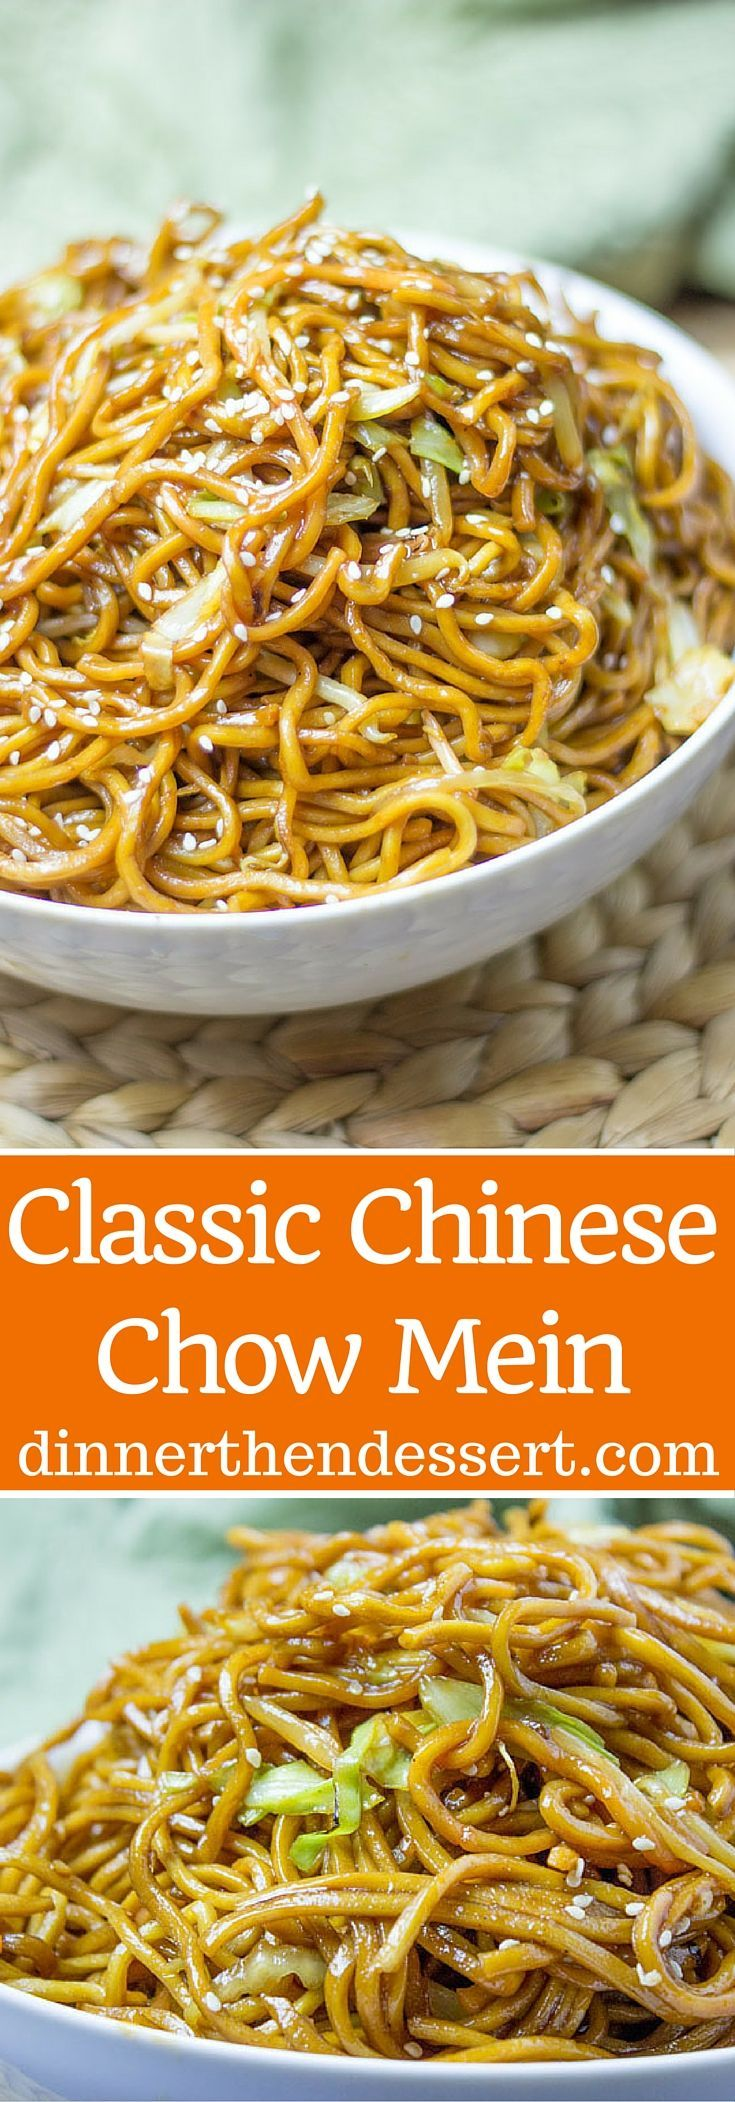 Best 25 chinese food recipes ideas on pinterest oriental food classic chinese chow mein with authentic ingredients and easy ingredient swaps to make this a pantry chinese food recipes forumfinder Gallery